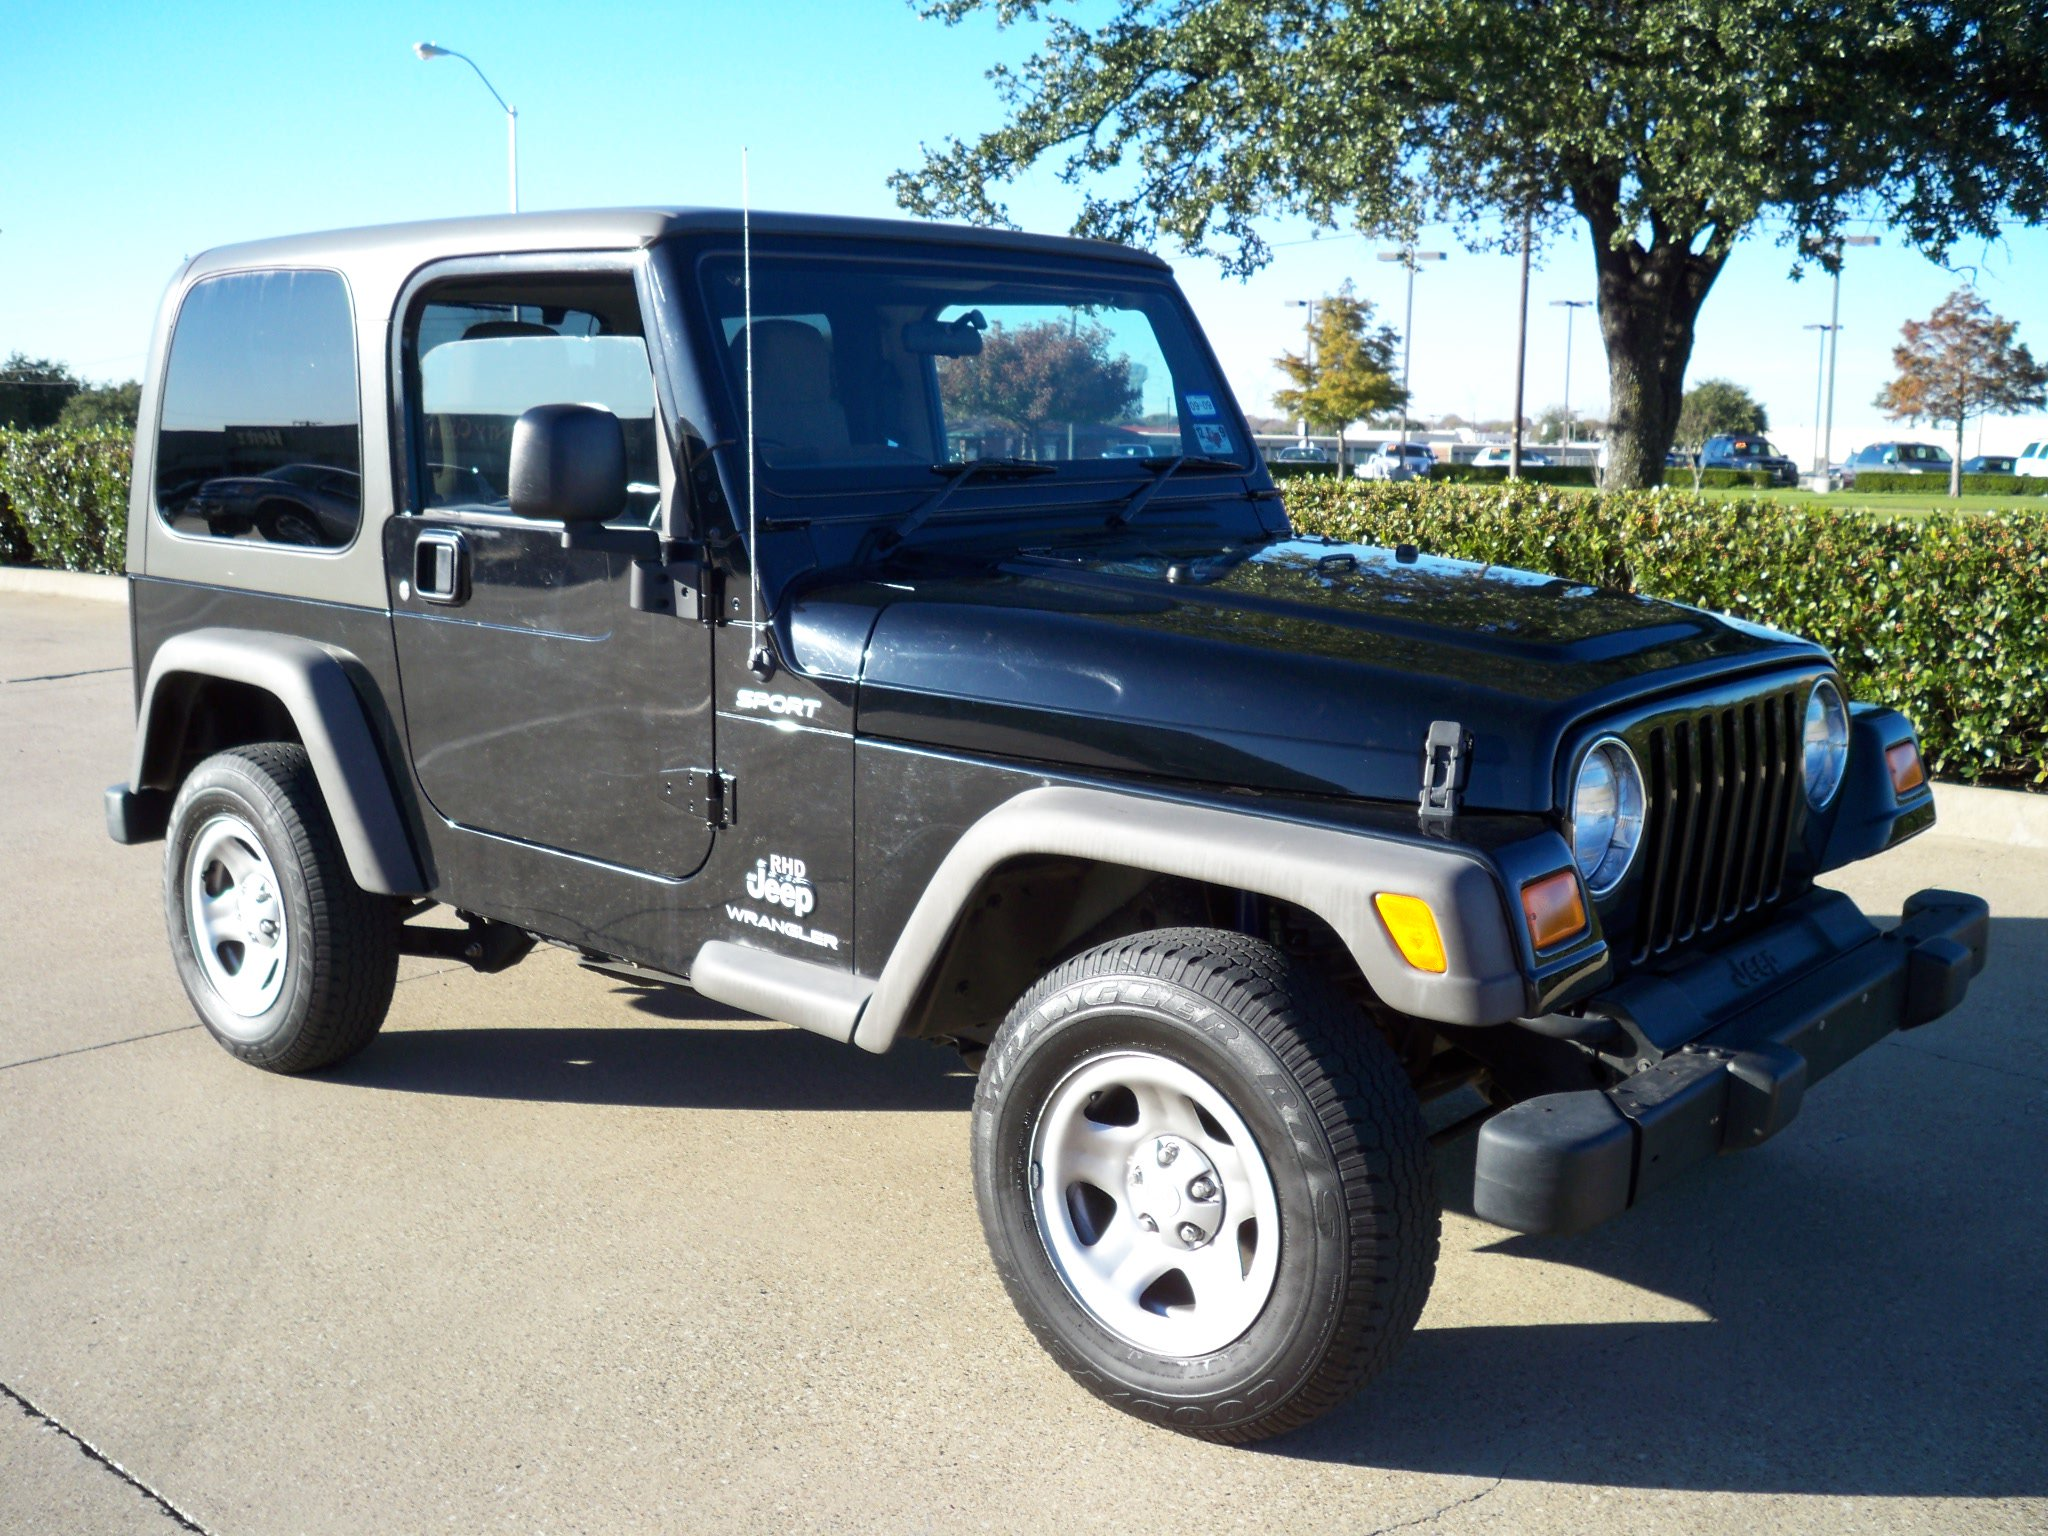 FOR SALE: 2006 Jeep Wrangler Sport